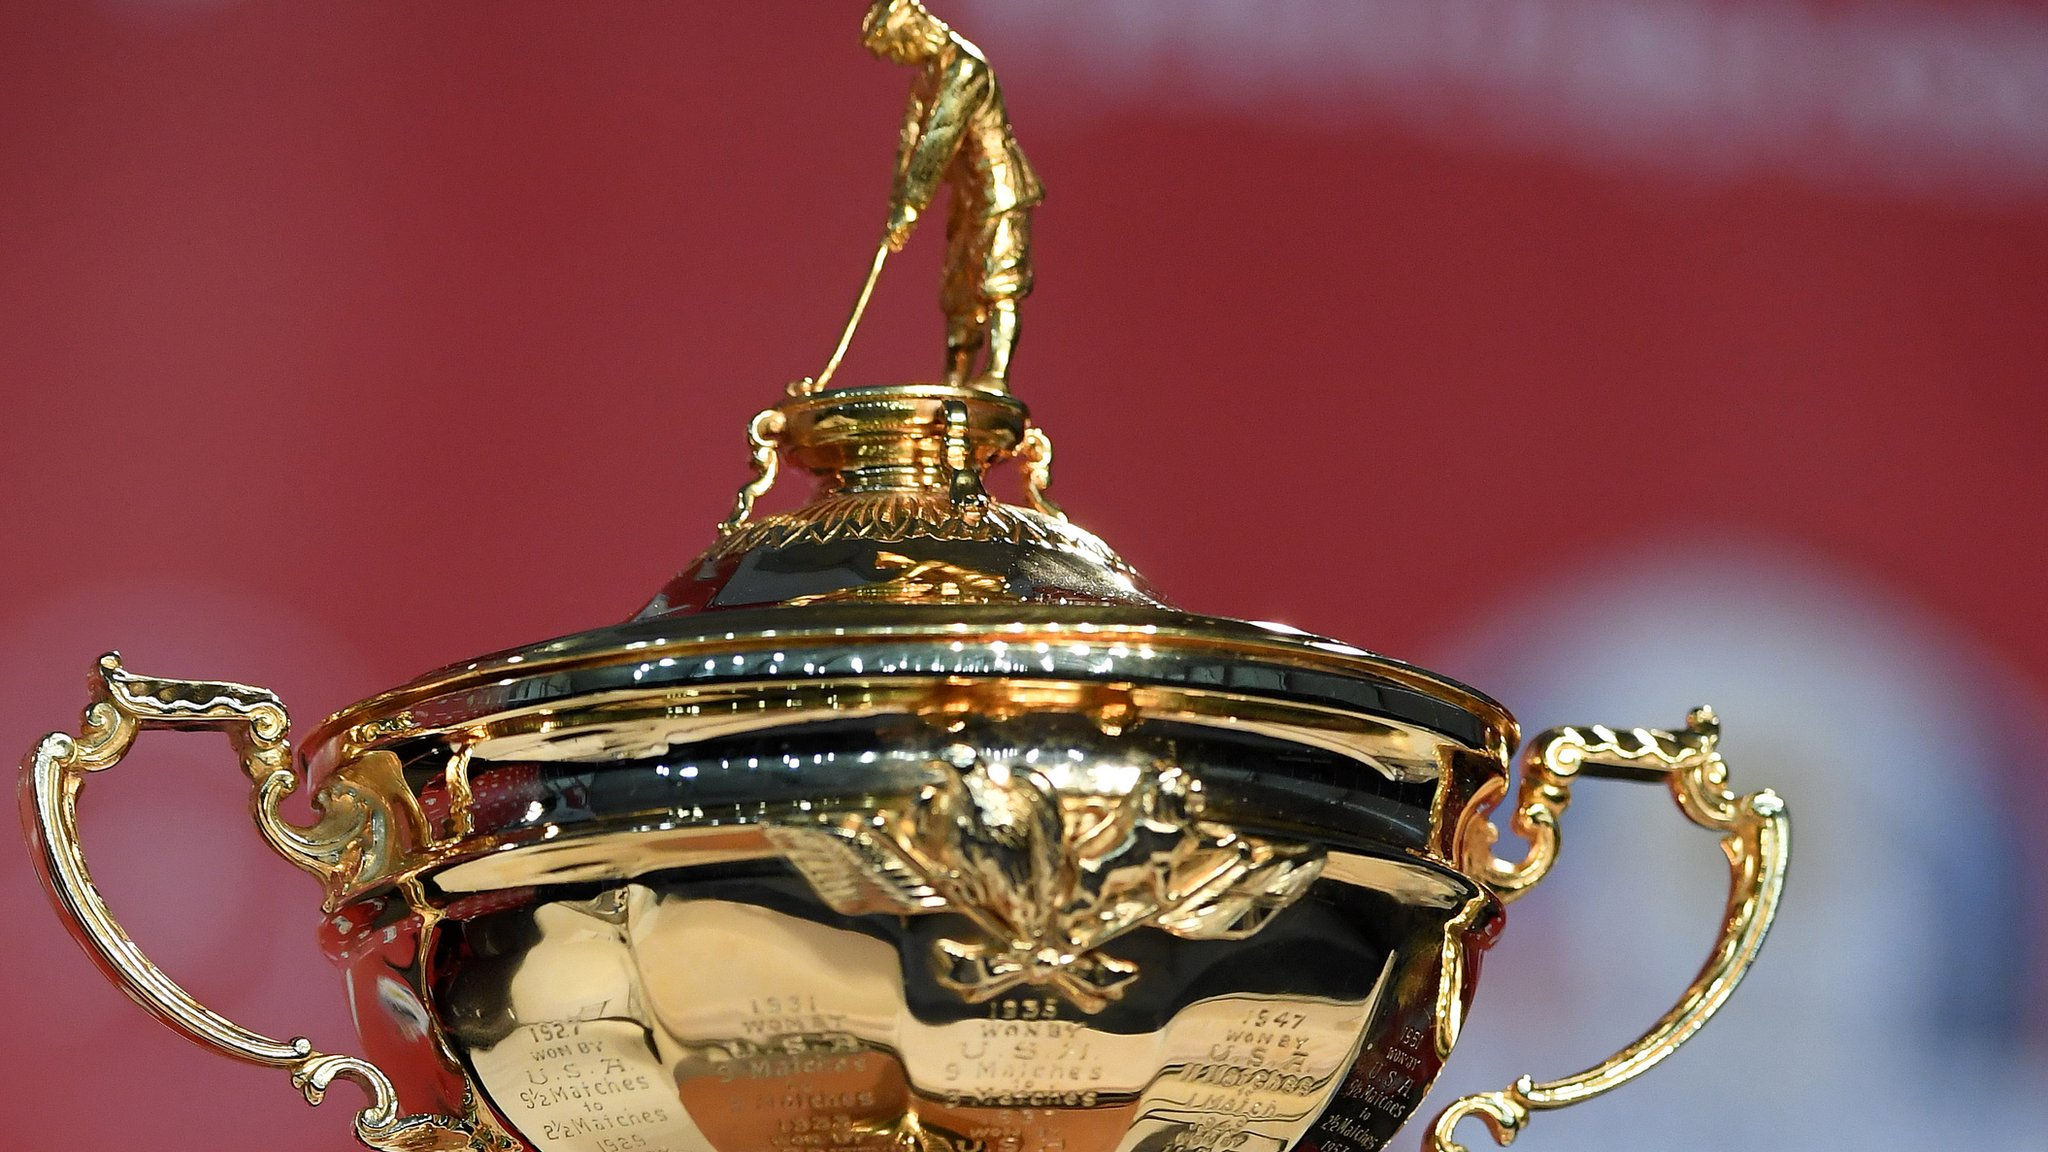 Palmer v Seve? Here are your all-time Ryder Cup teams